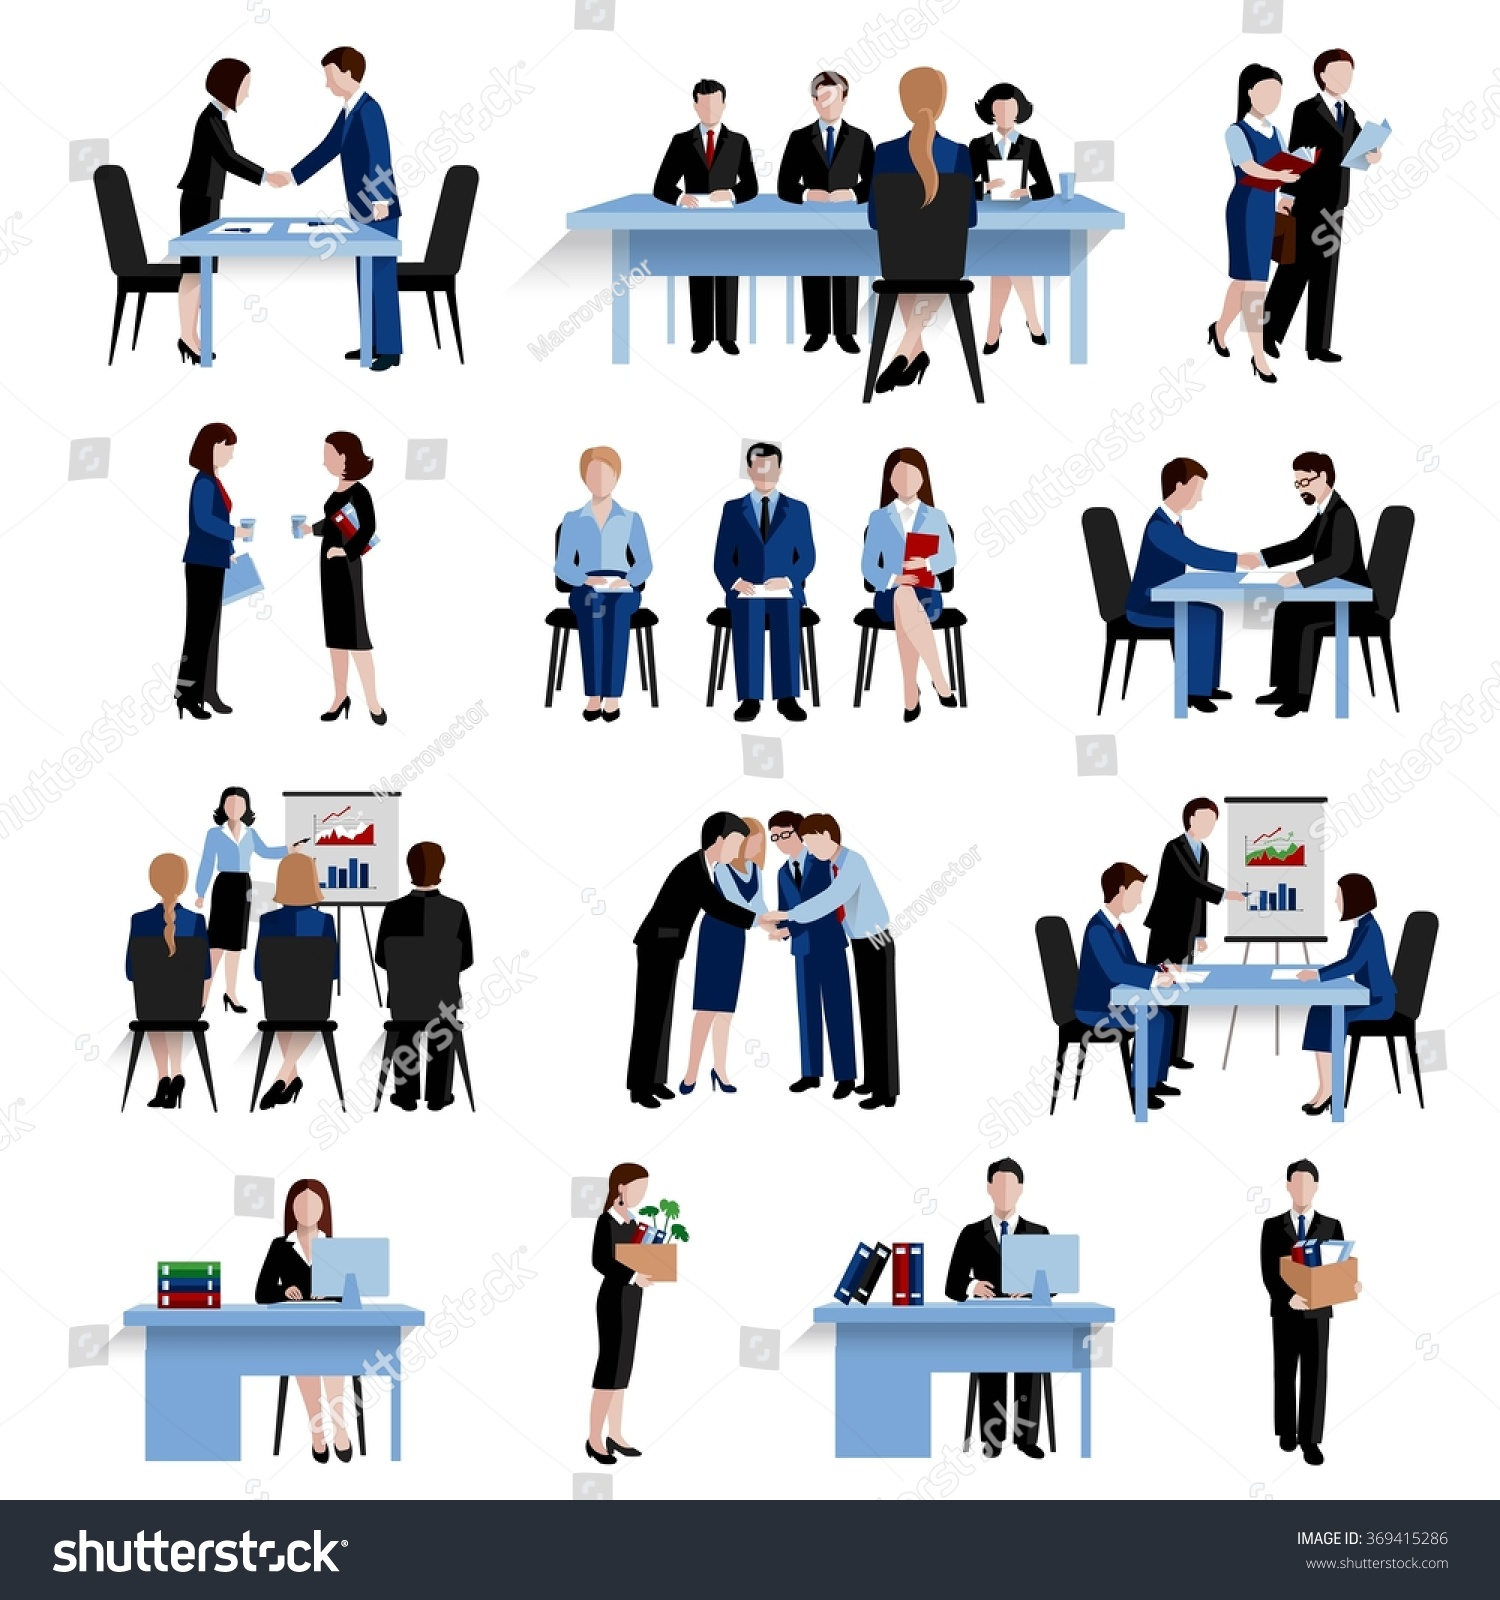 human resources concept flat icons set stock illustration